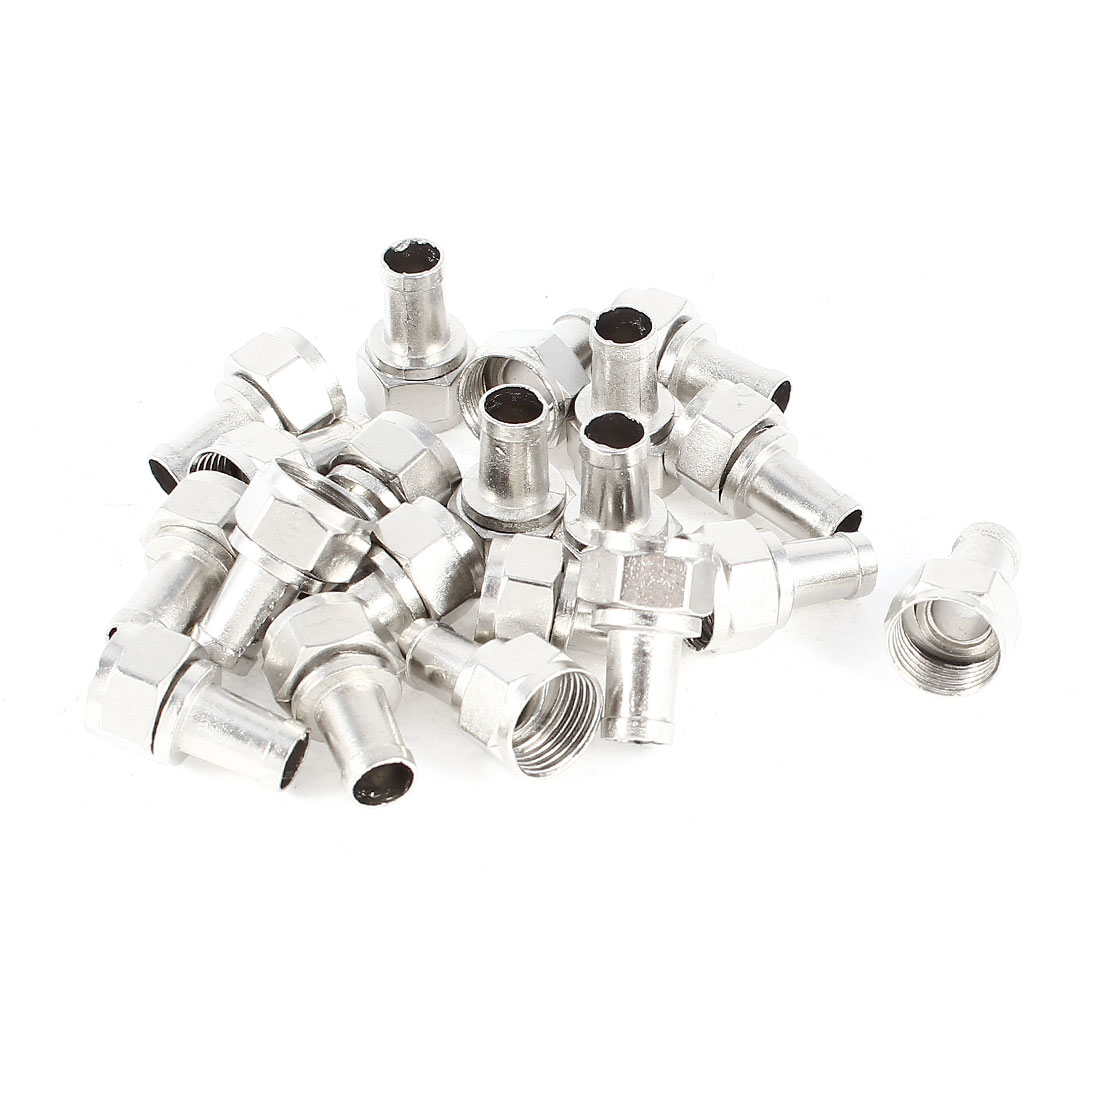 20 Pcs Screw On Coax F-Type Male Connector Adapter Silver Tone for RG6 Cable